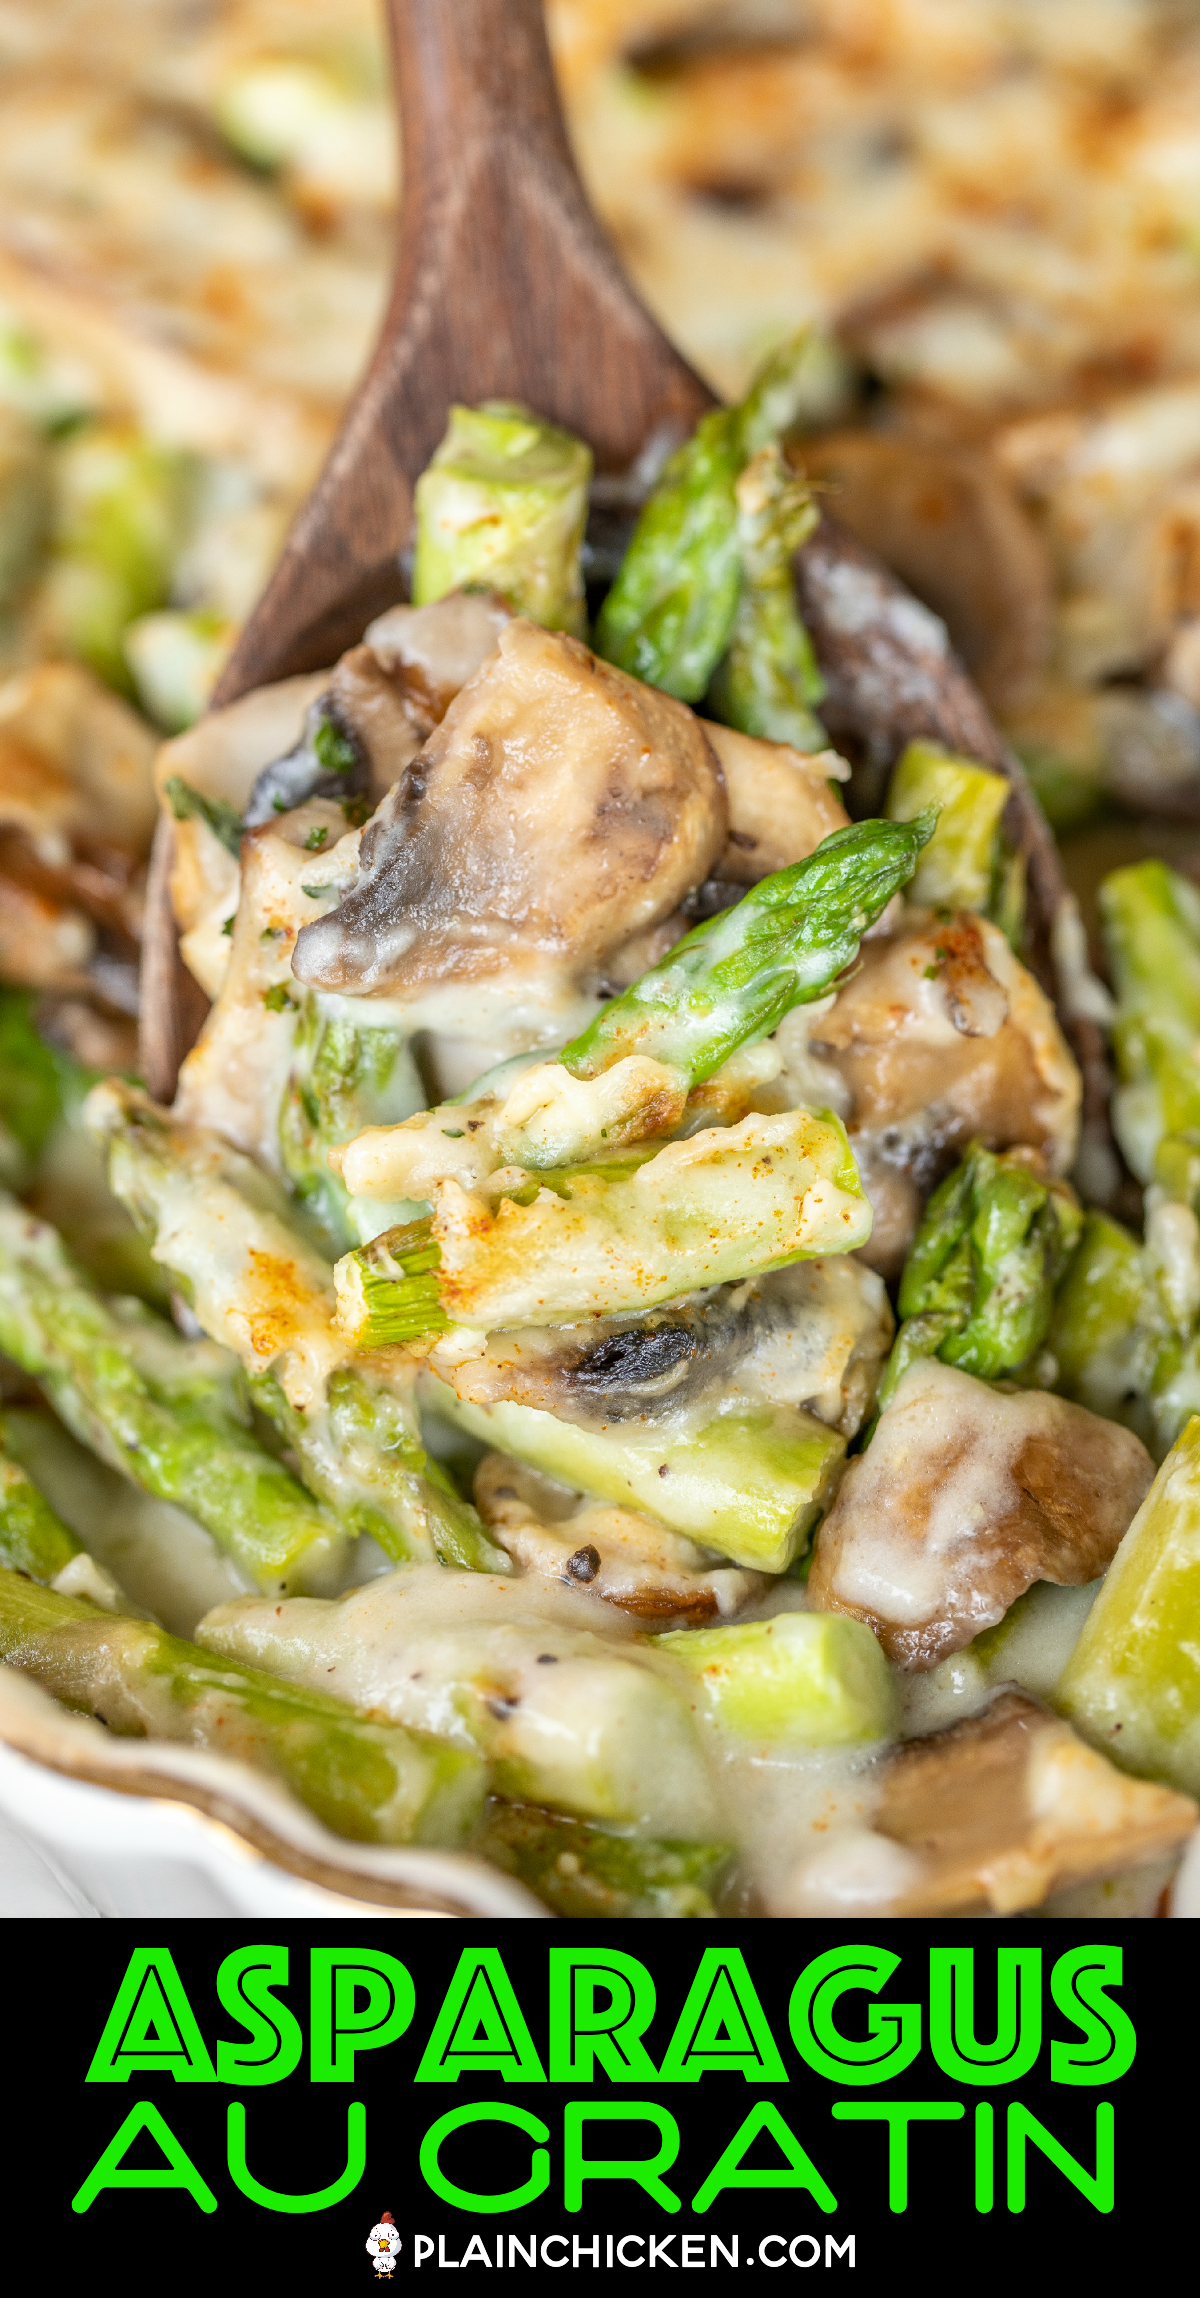 Asparagus Au Gratin - Plain Chicken